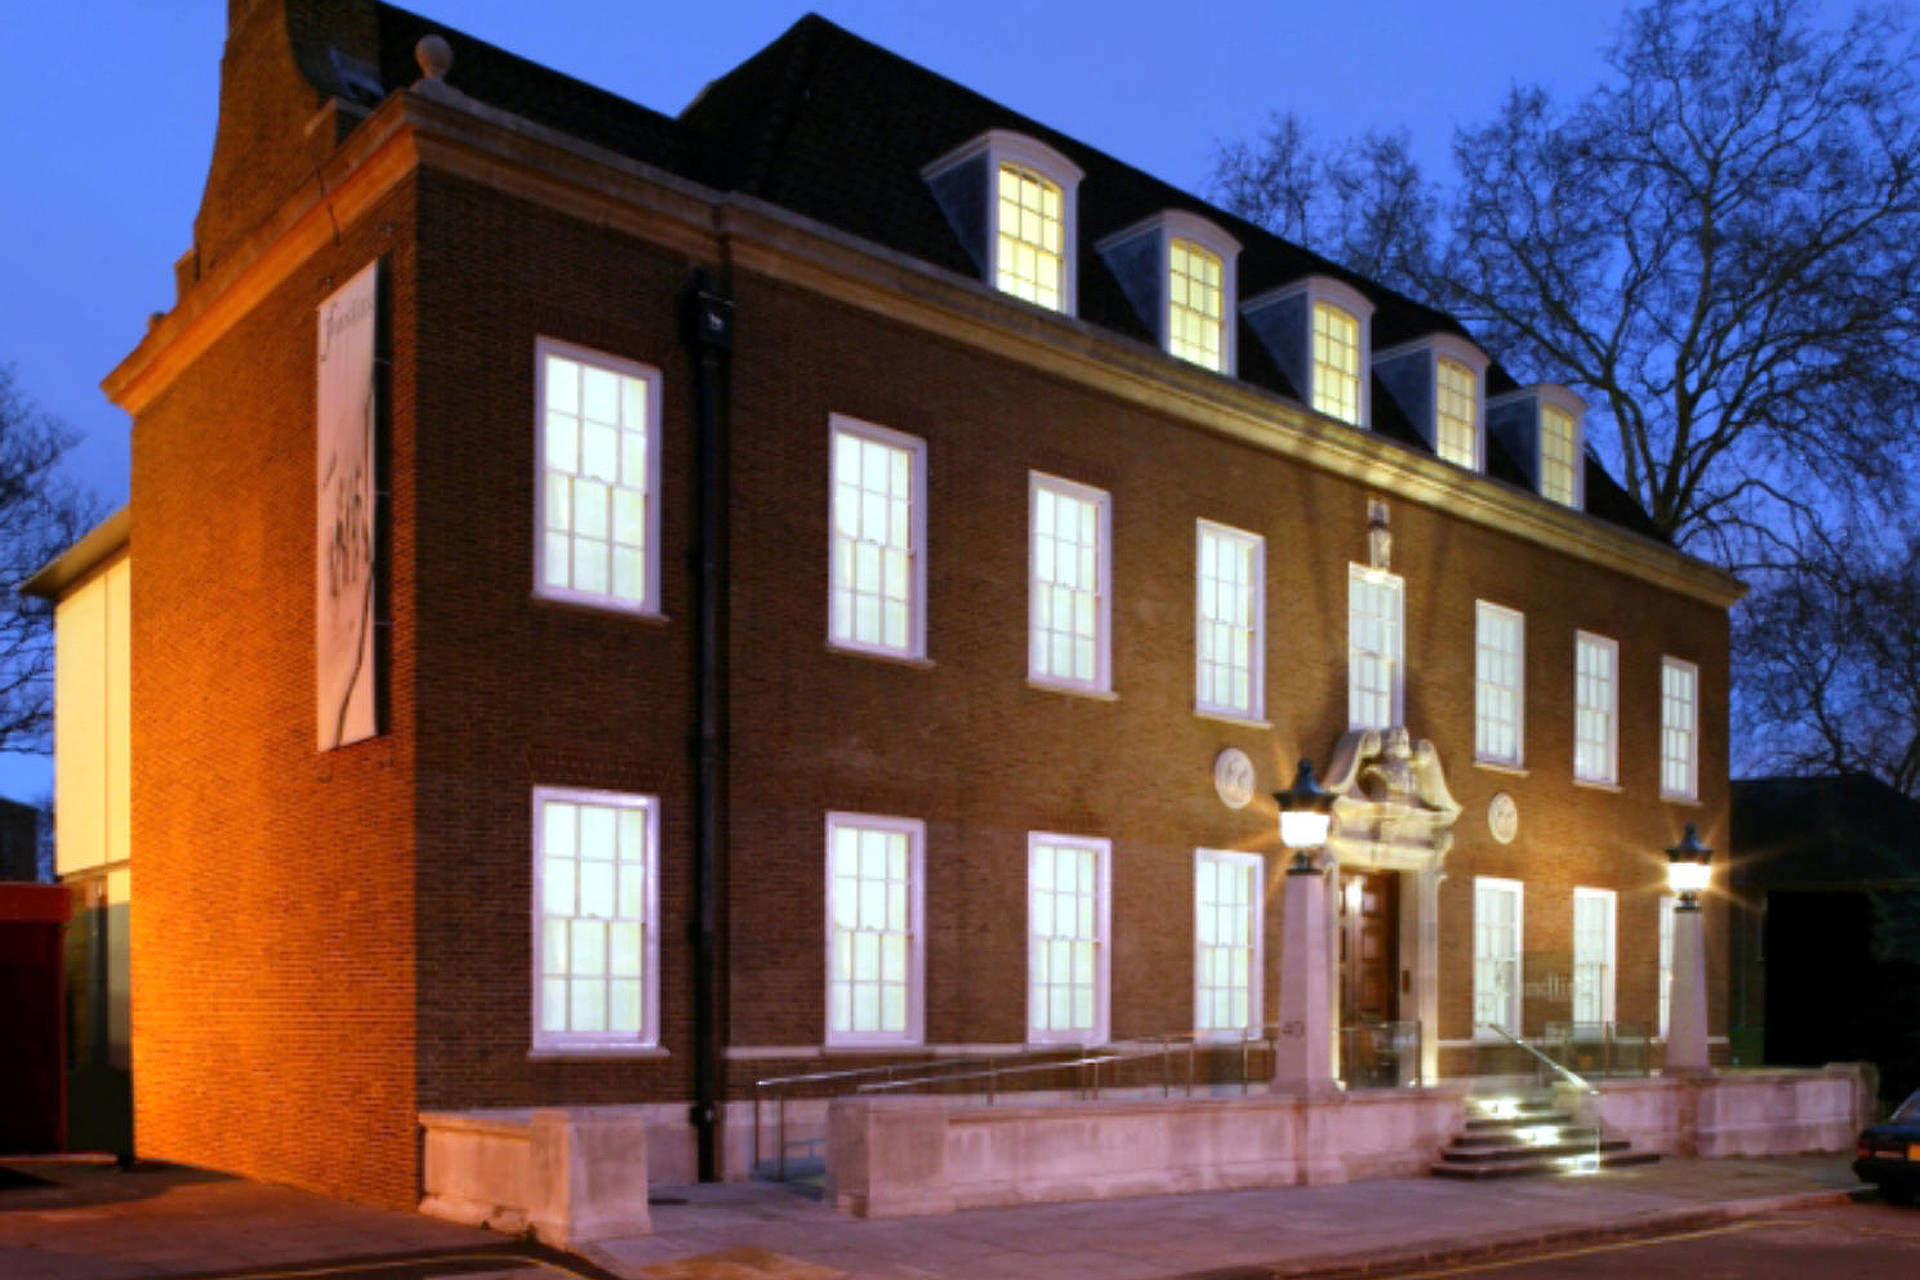 The Foundling Museum Venues